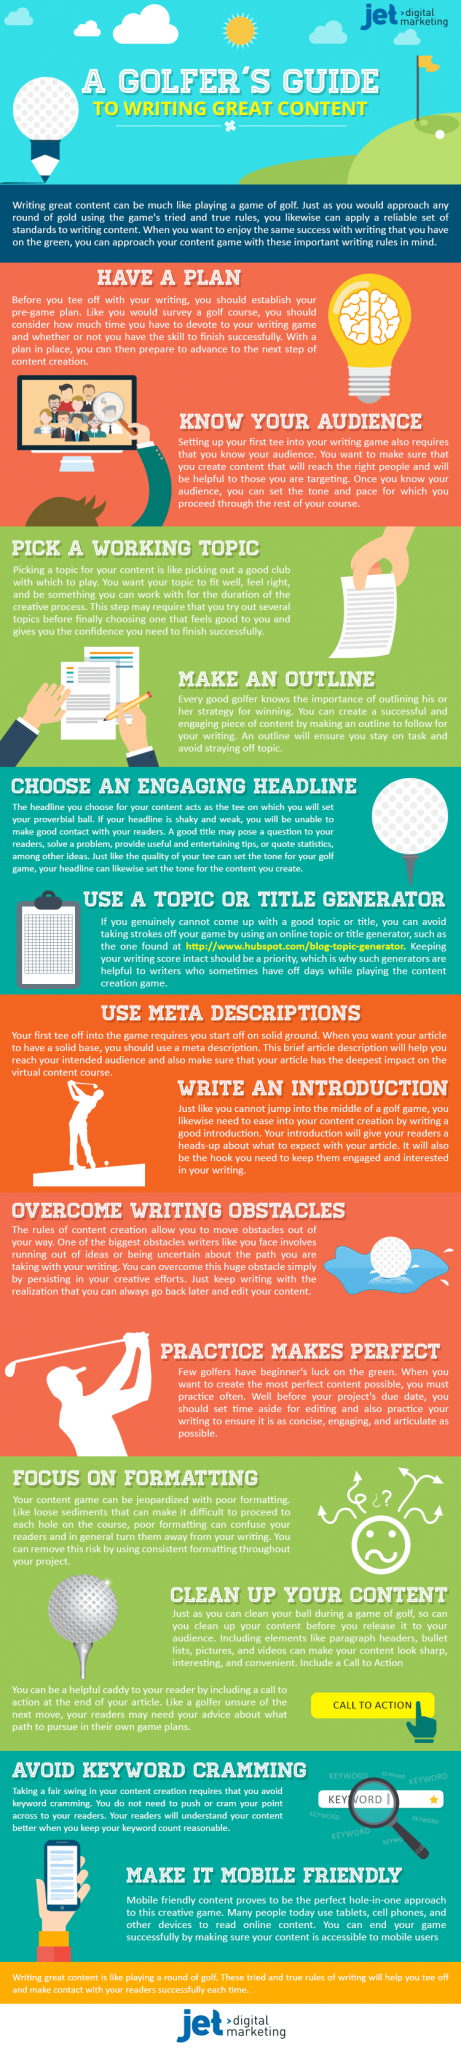 writing-great-content-infographic